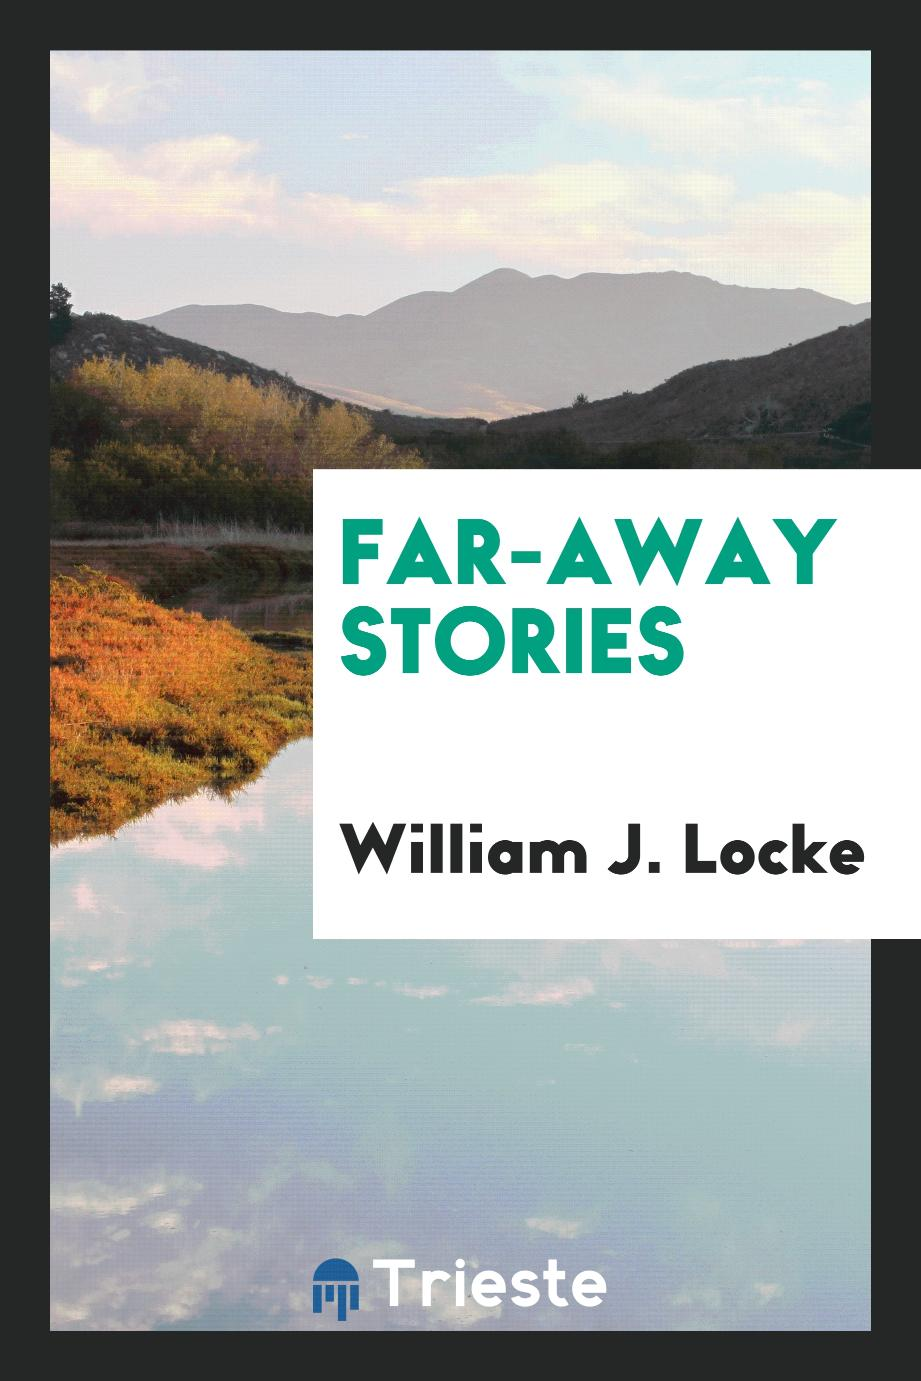 Far-away stories